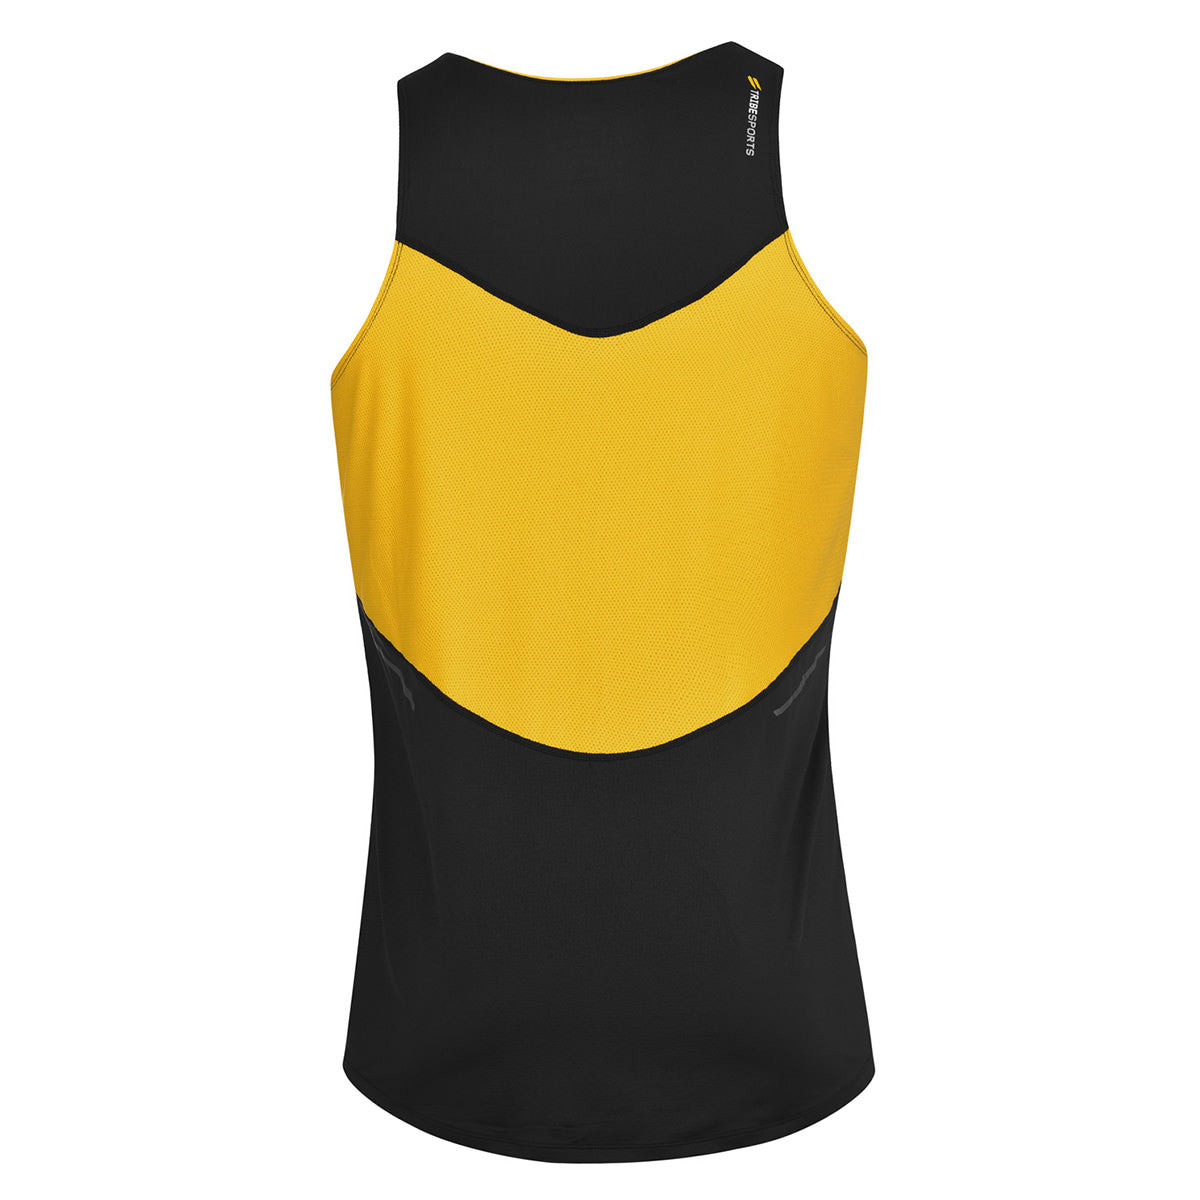 Men's Running Vest - Black , Tribesports - 3